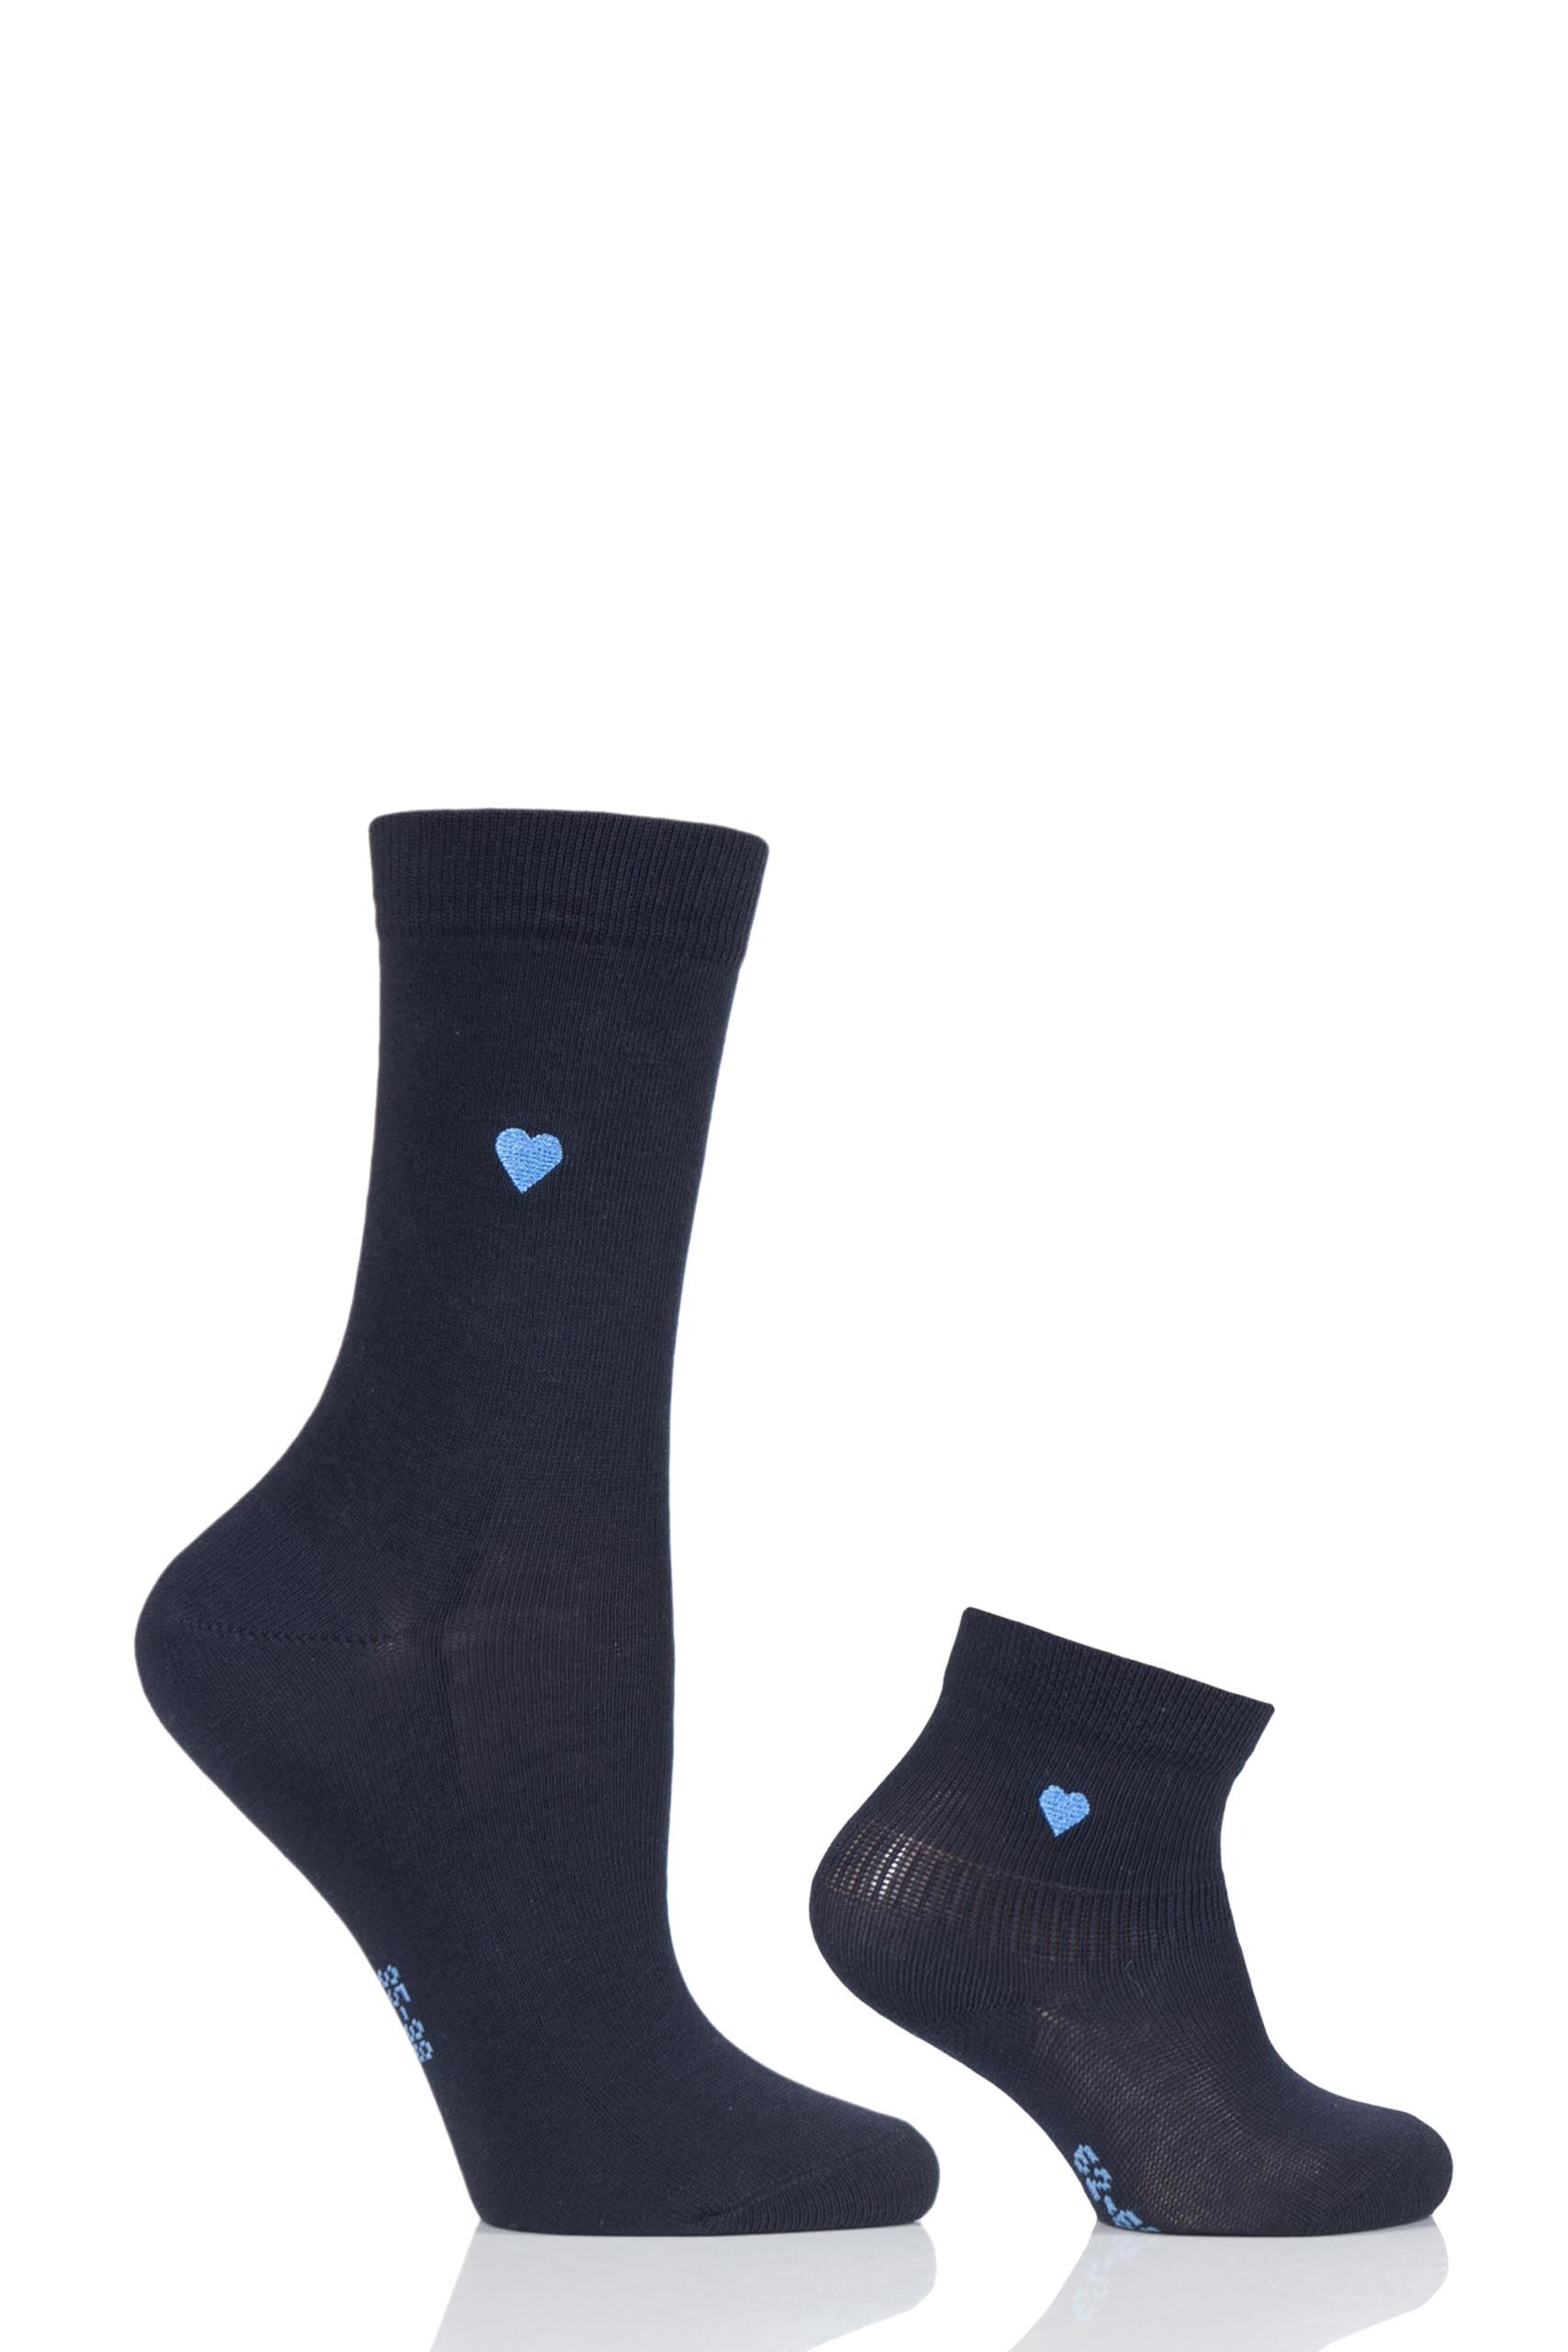 Image of 1 Pack Navy Mini Me Set Woand Babies Matching Socks Ladies and Kids 5.5-8 Ladies (1-6 Months Baby) - Falke